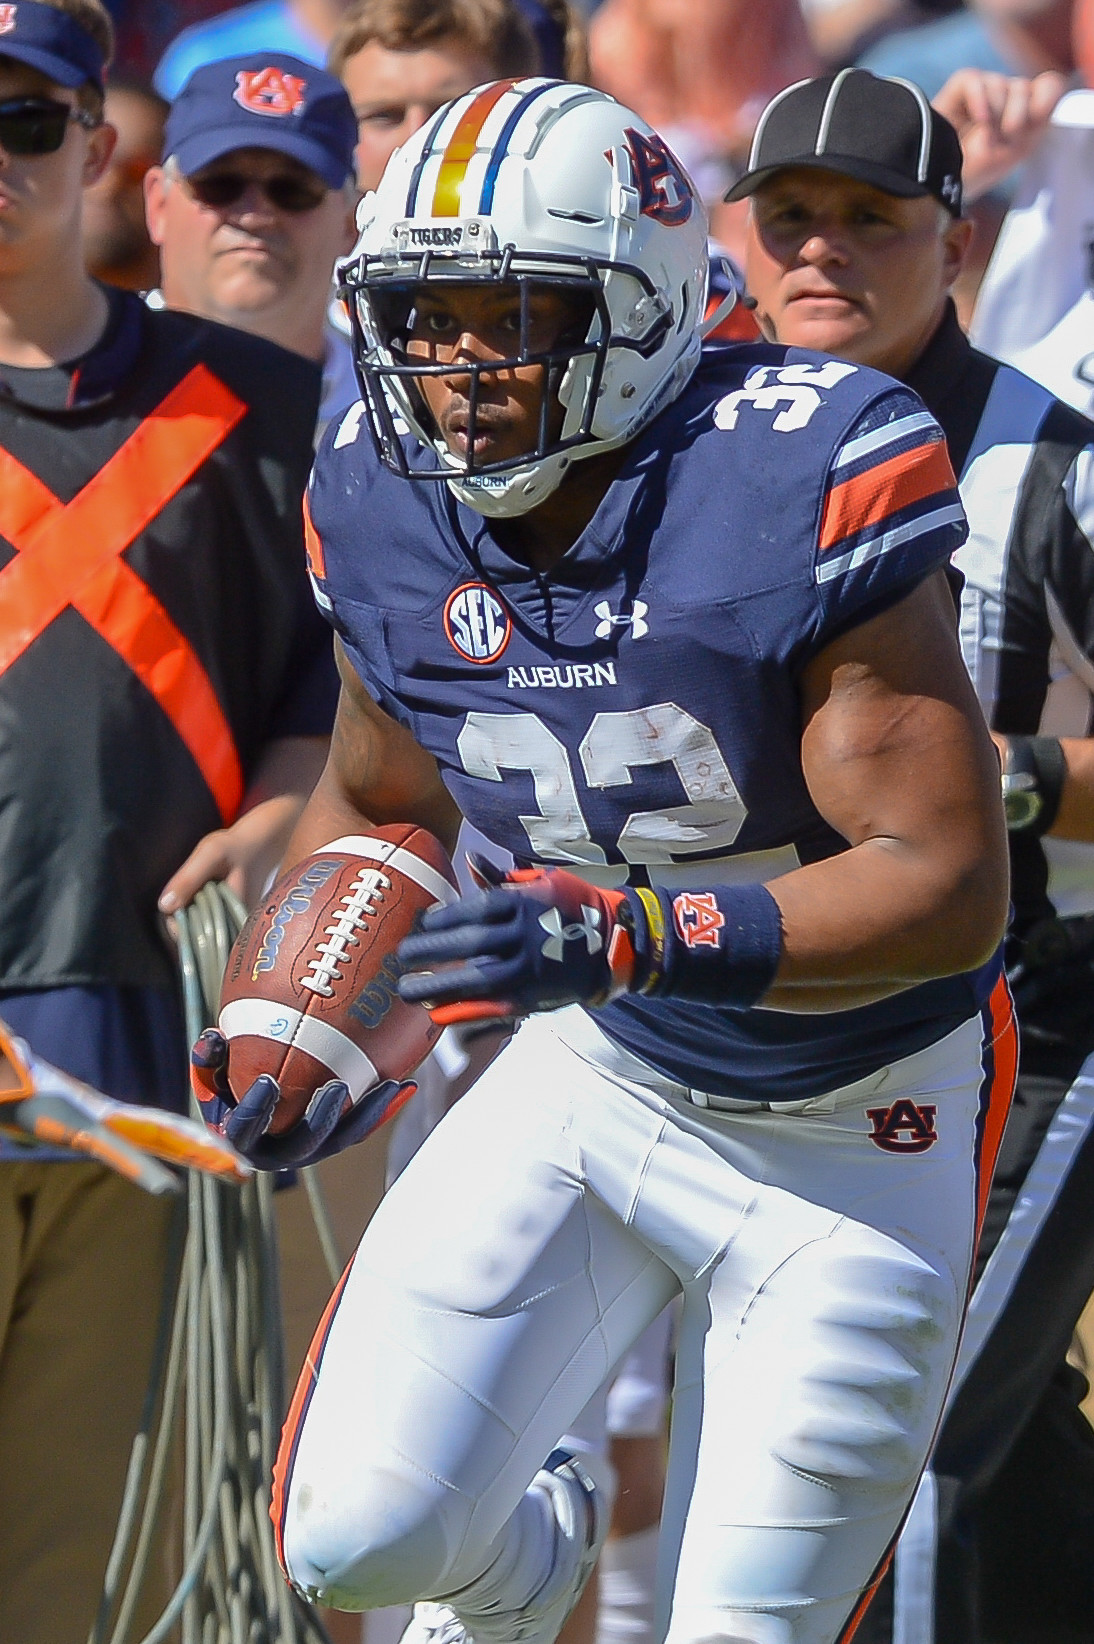 Auburn Tigers running back Malik Miller (32) runs during the second half of Saturday's game, at Jordan-Hare Stadium in Auburn, AL. Daily Mountain Eagle -  Jeff Johnsey